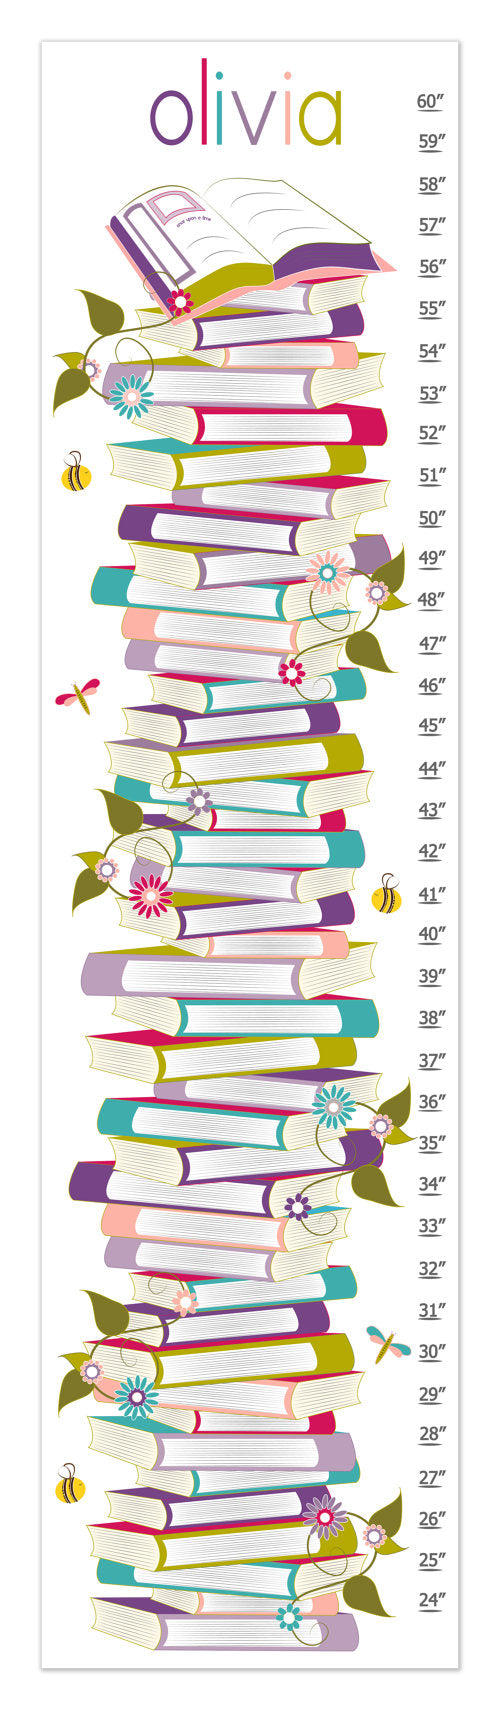 Books Personalized Growth Chart - Purple - Nursery Decor